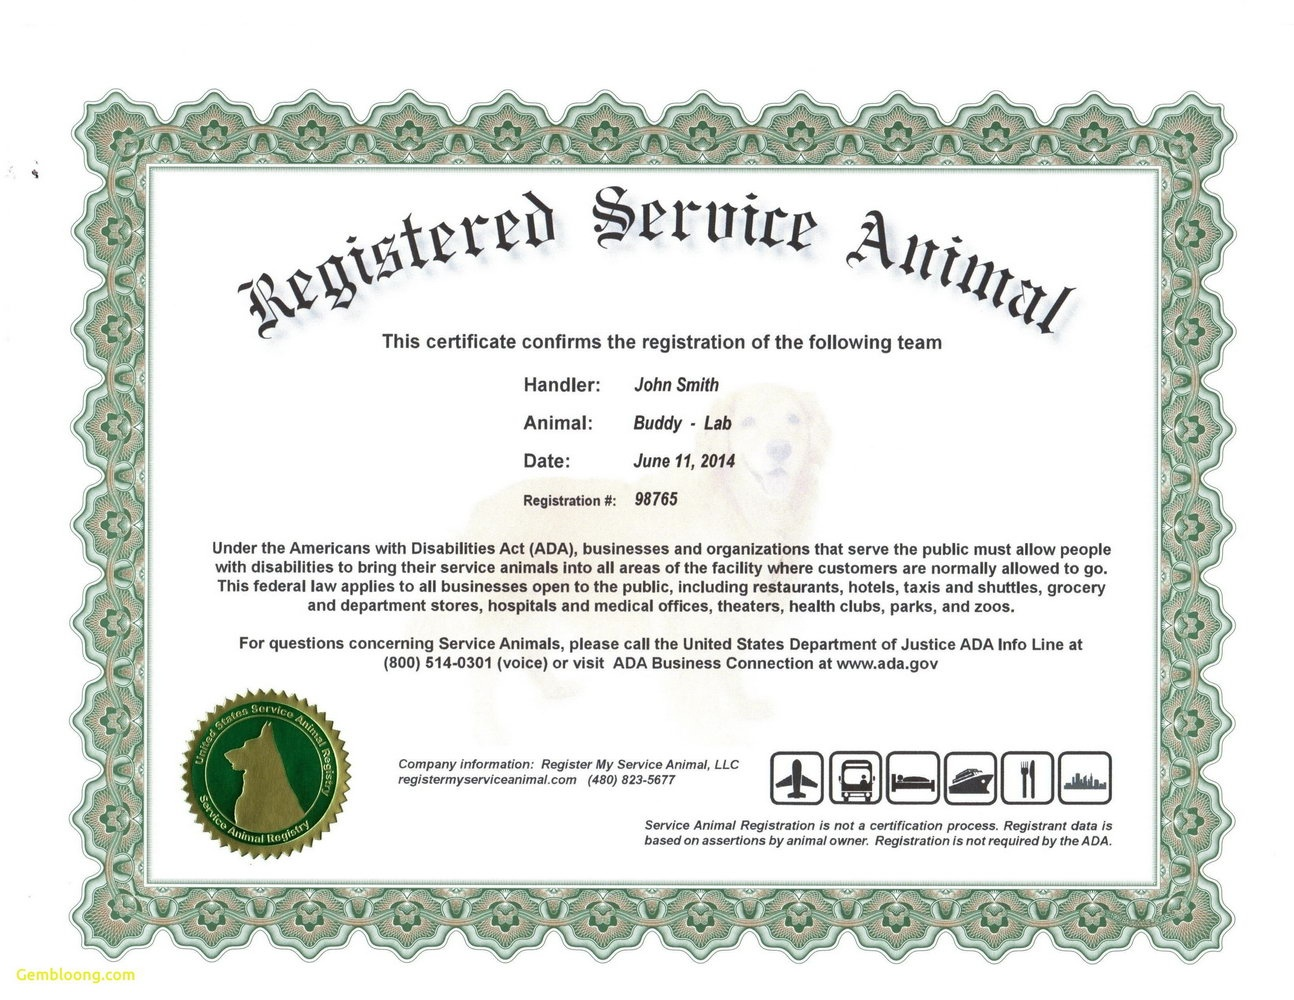 004 Service Dog Certificate Template Frightening Ideas Id Card Free - Free Printable Service Dog